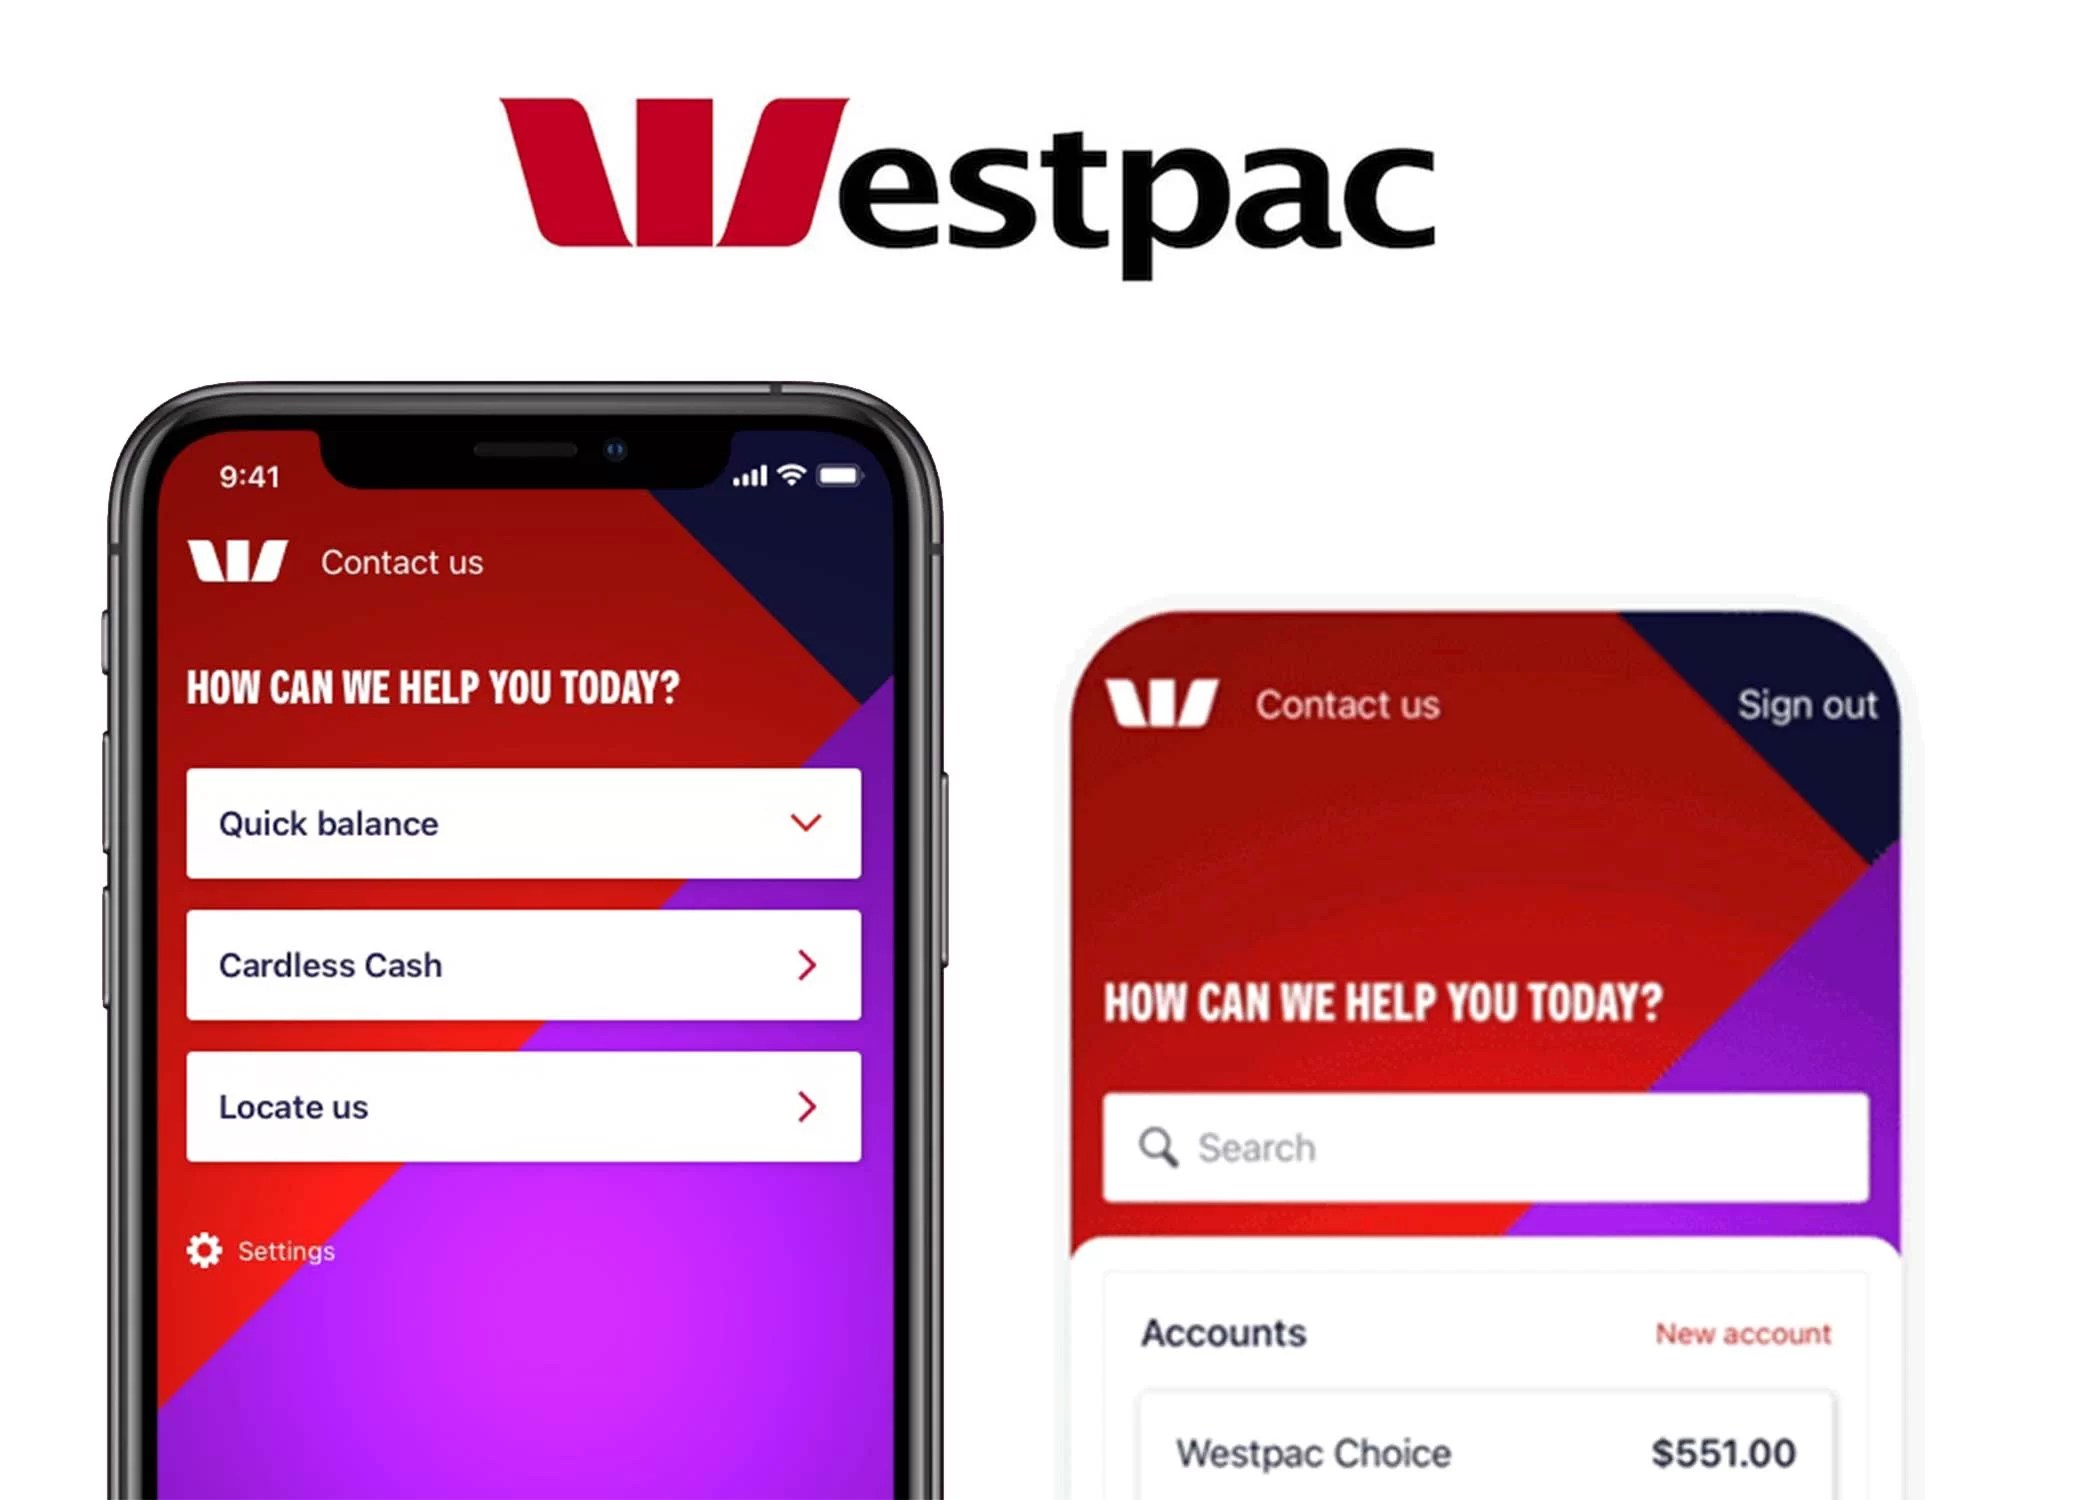 Tips to Get Started with Westpac Online Bank Services Now